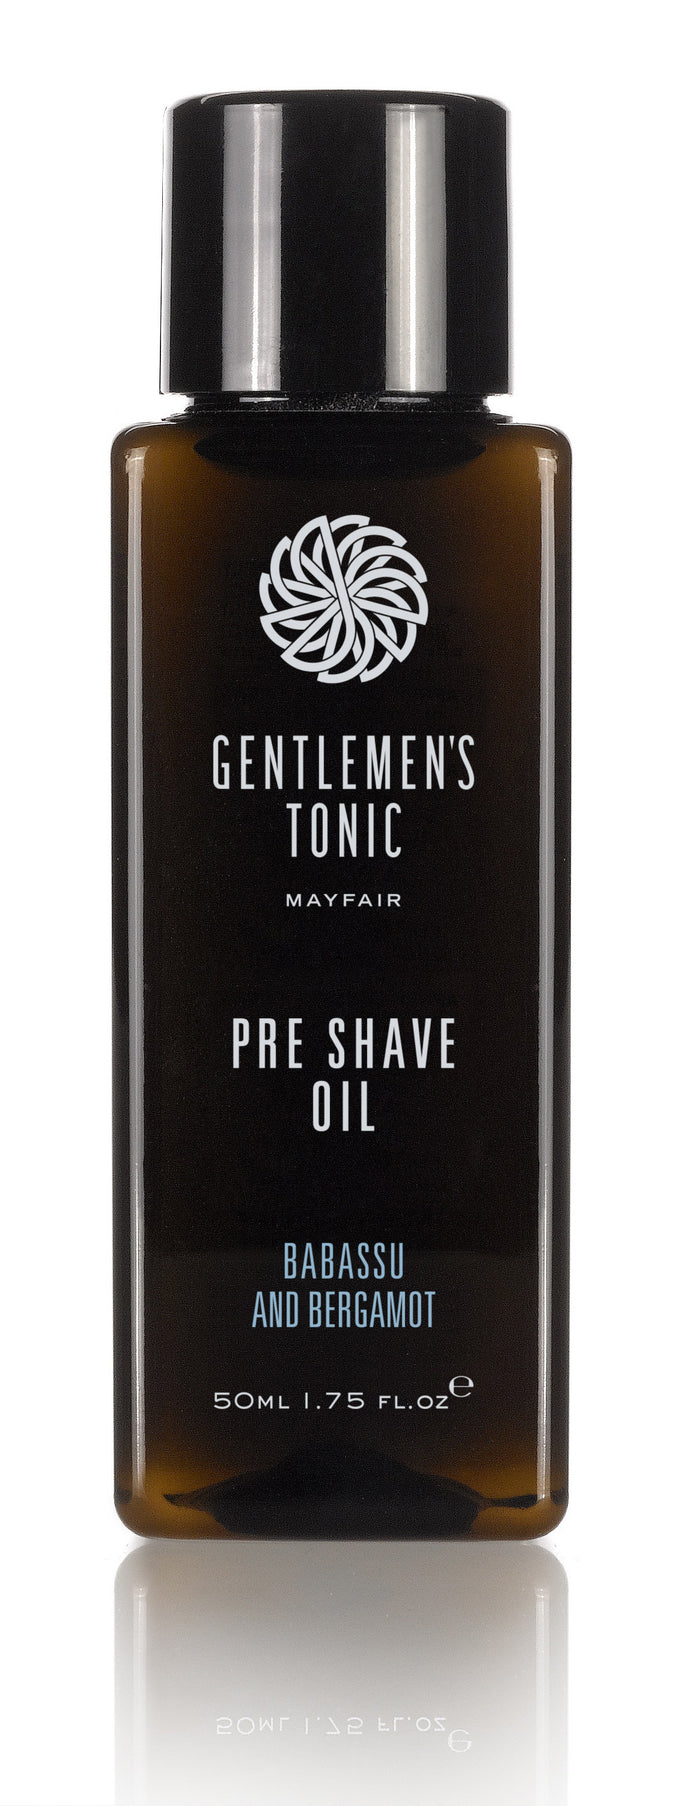 GENTLEMEN'S TONIC PRE SHAVE OIL 50ML